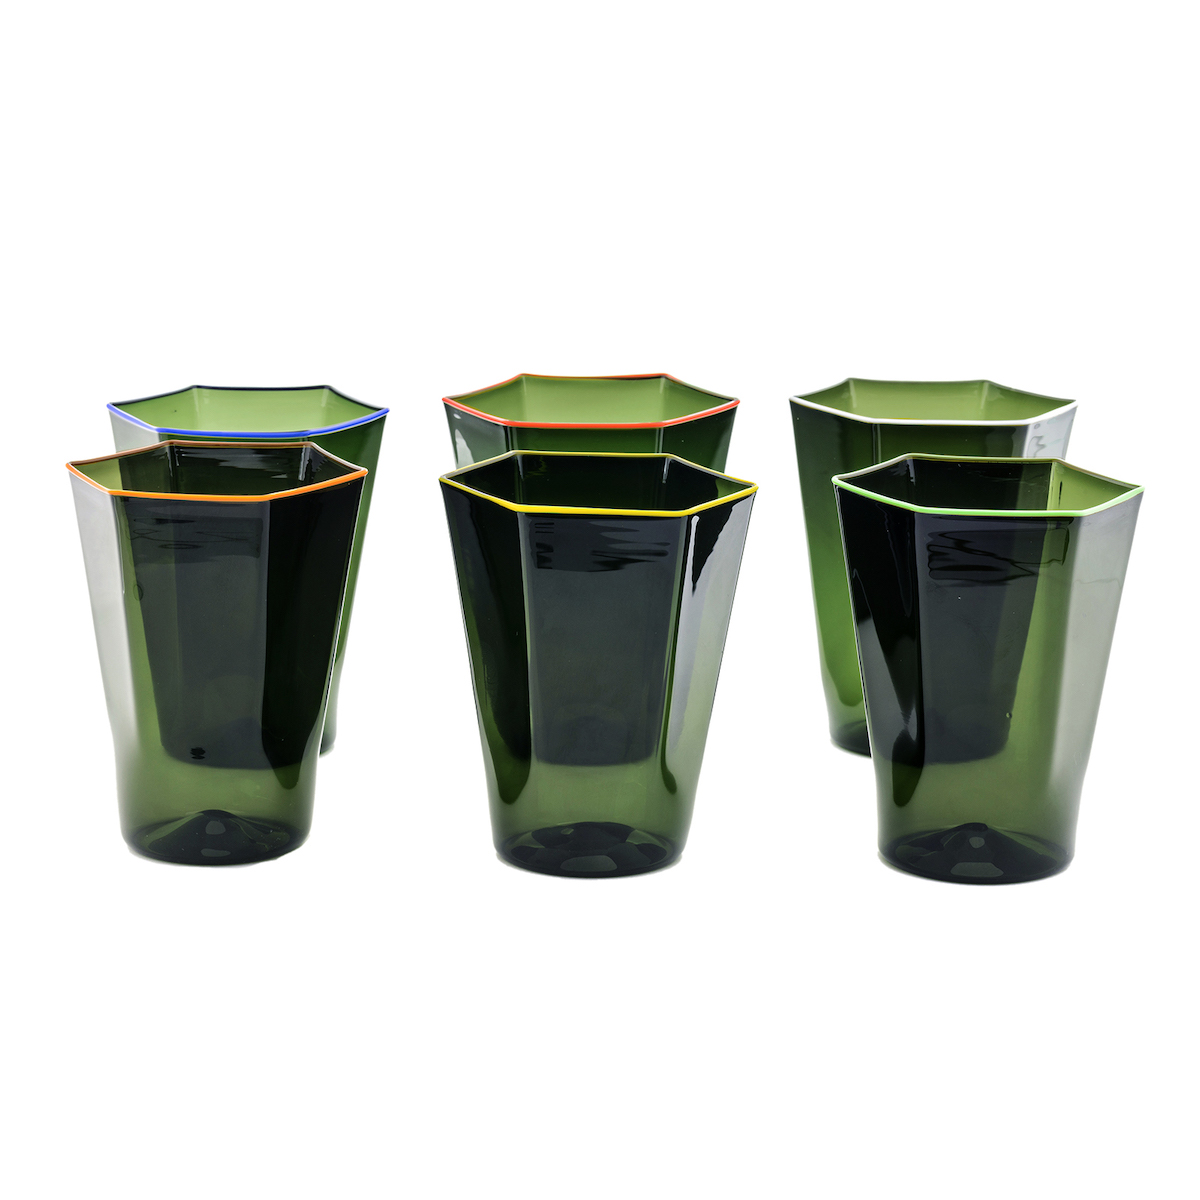 laguna-green-colorful-rim-murano-glasses-water-precious-fun-geometric-geometrical-exagonal